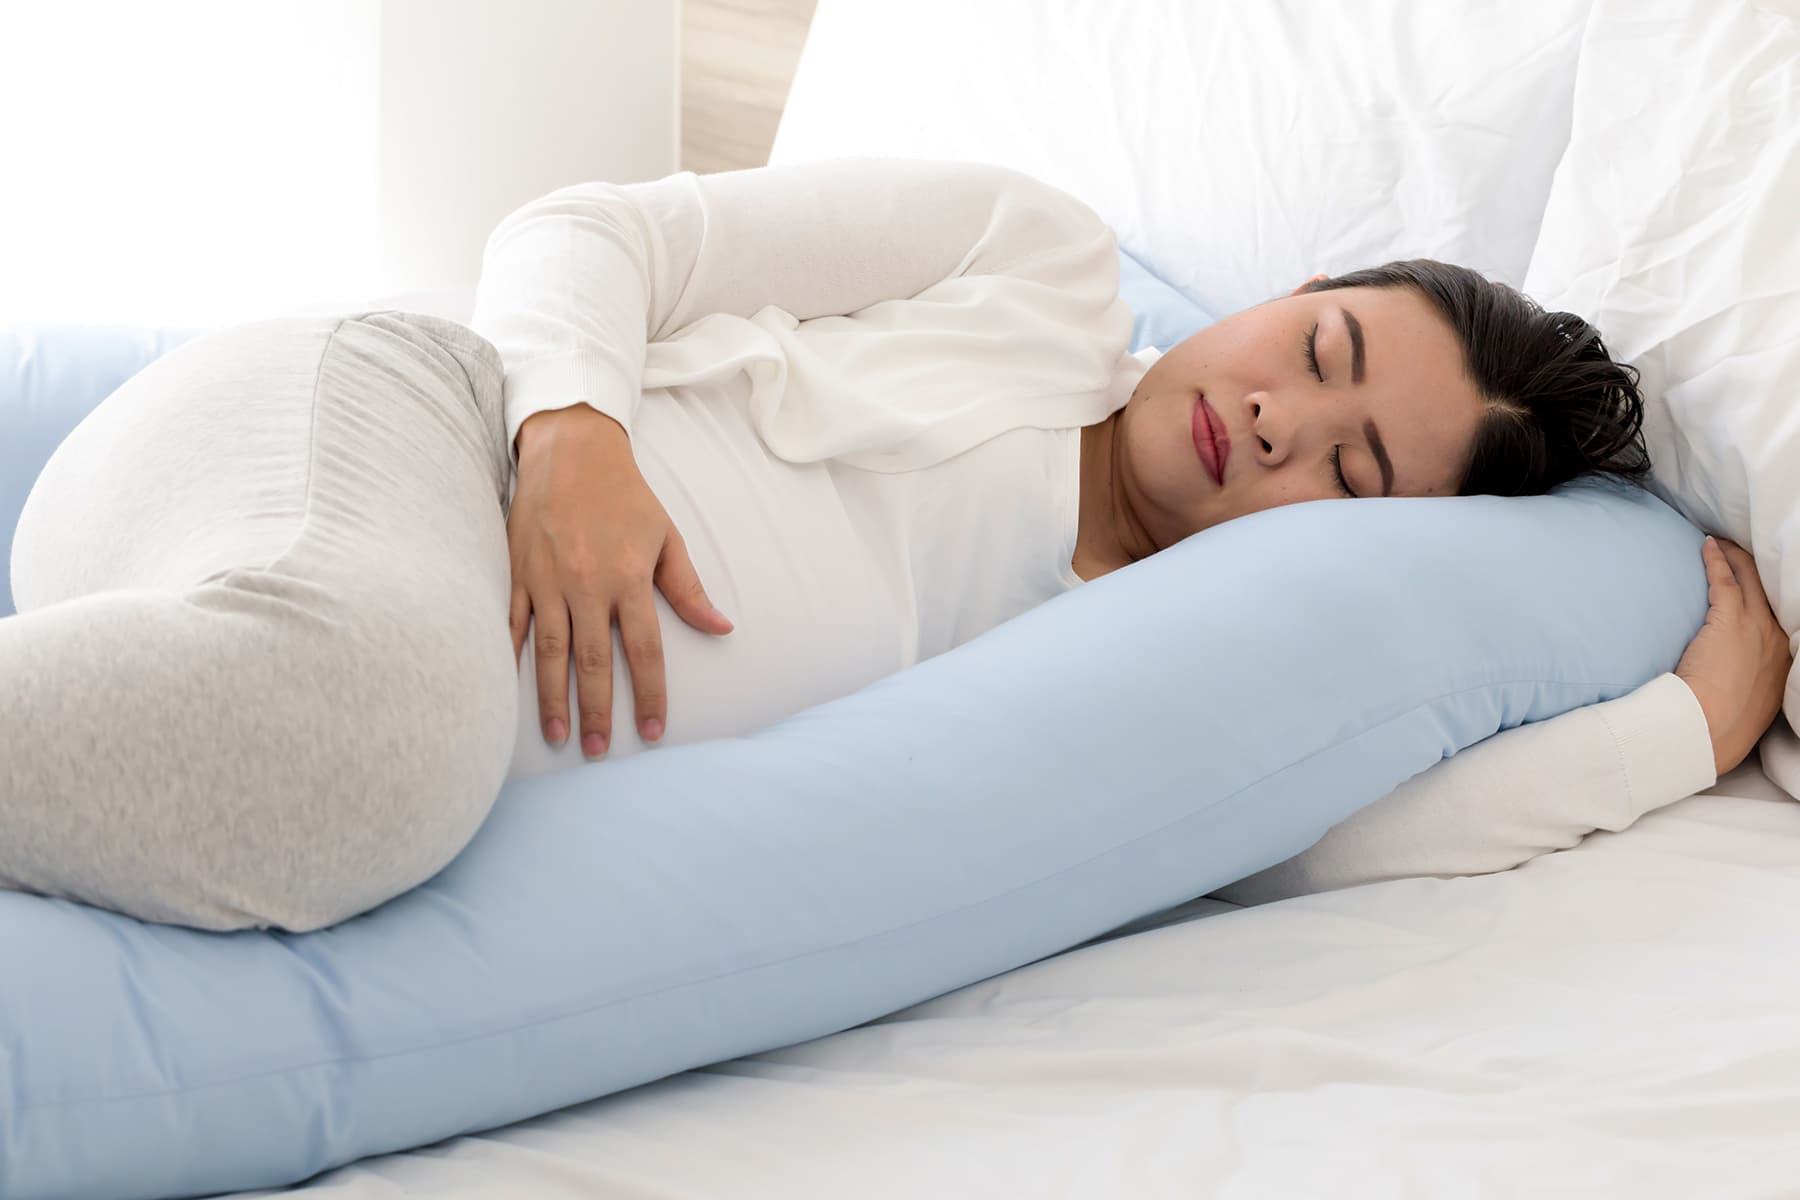 Comfort Tips For Sleeping During Pregnancy